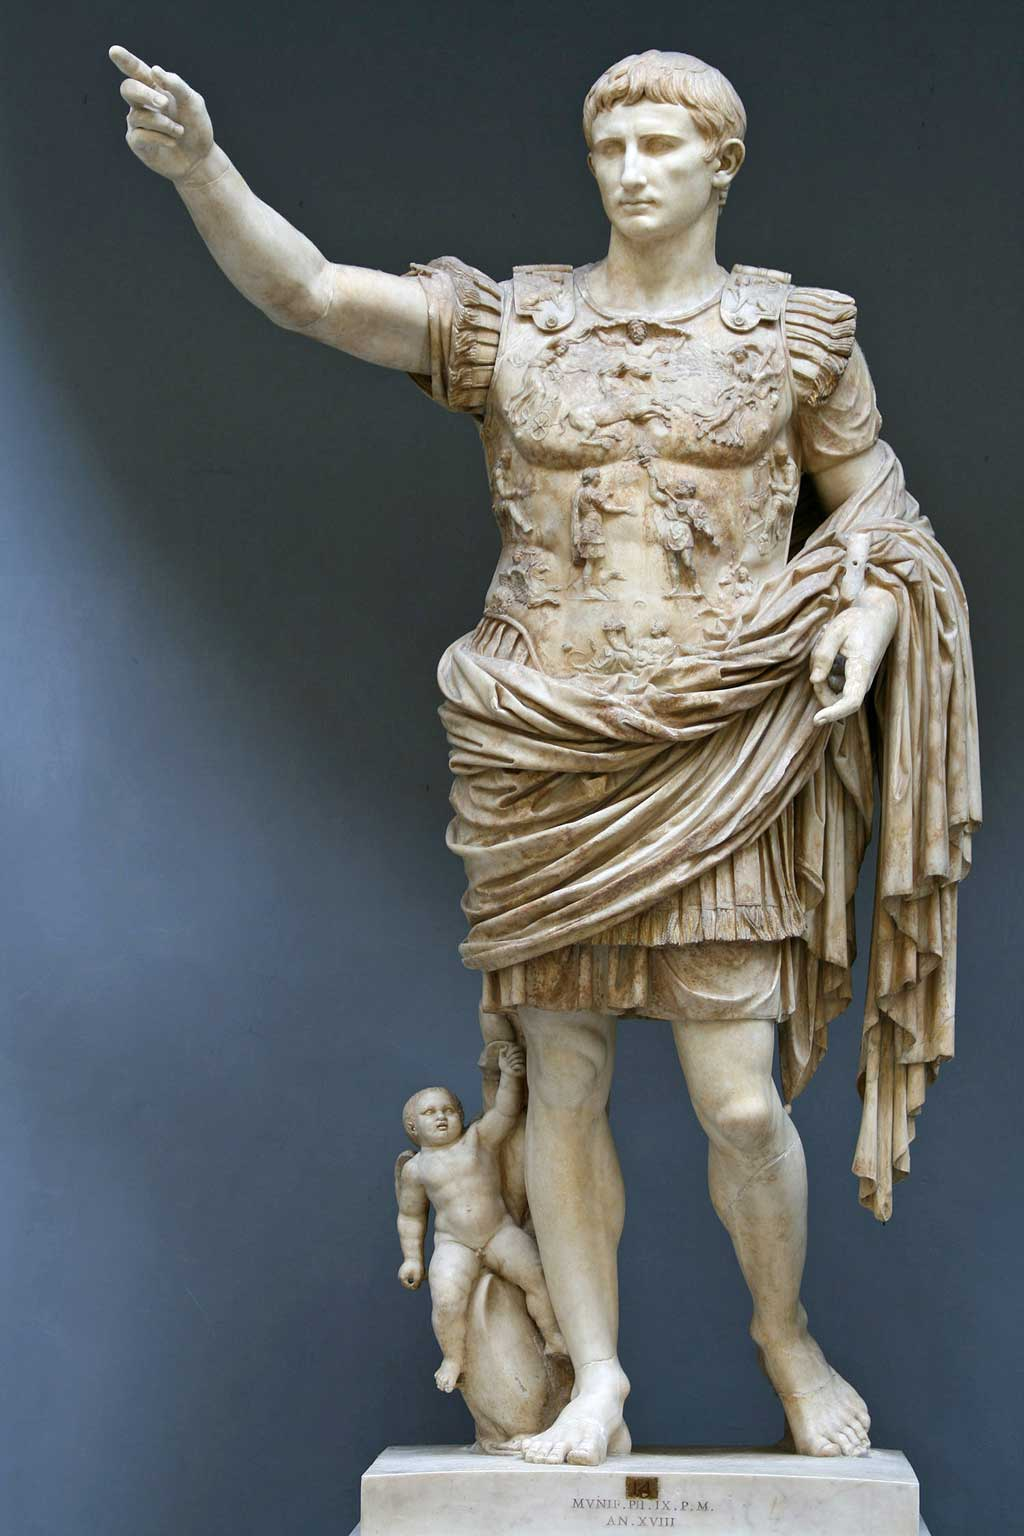 The Augustus of Primaporta statue shows the influence of both Roman and Classical Greek works. Cupid rides a dolphin at Augustus' feet, a symbol of his divine ancestry.